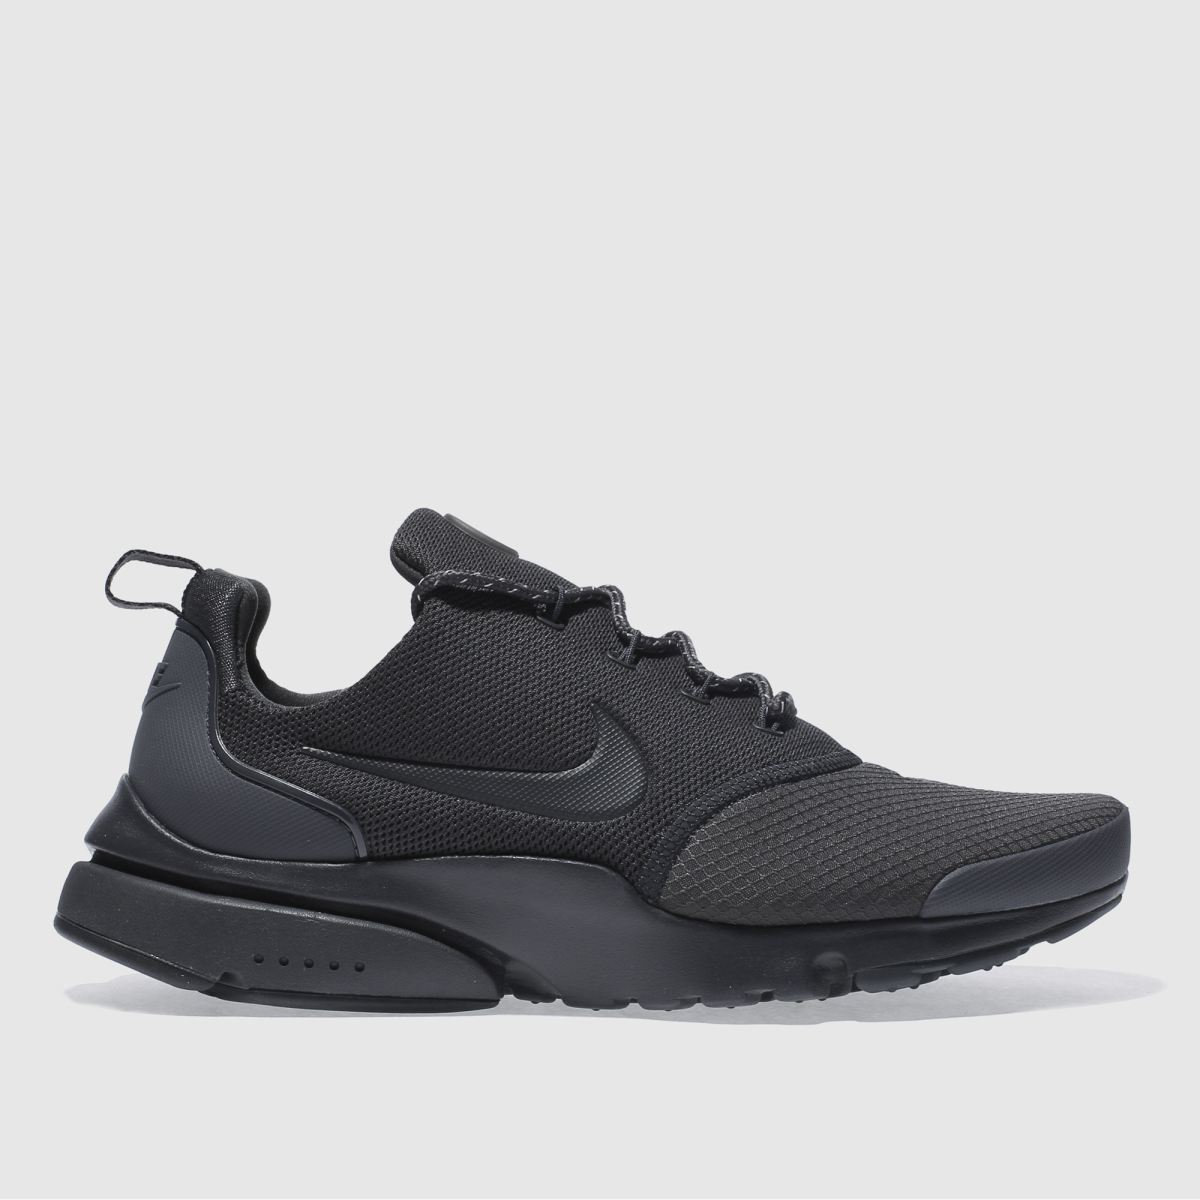 Nike Dark Grey Air Presto Ultra Trainers